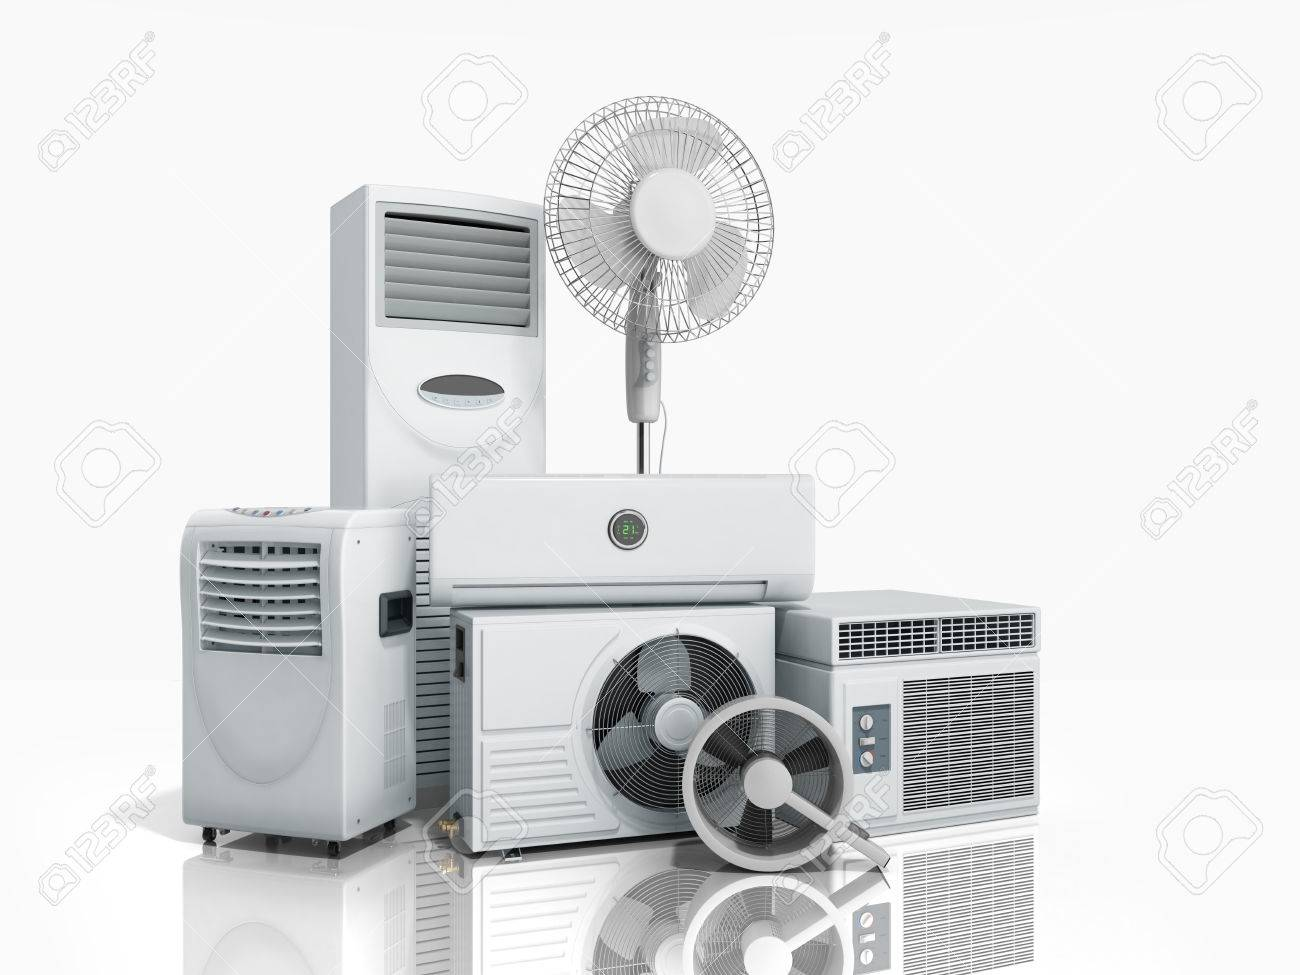 air conditioning equipment 3d rensder on white background stock